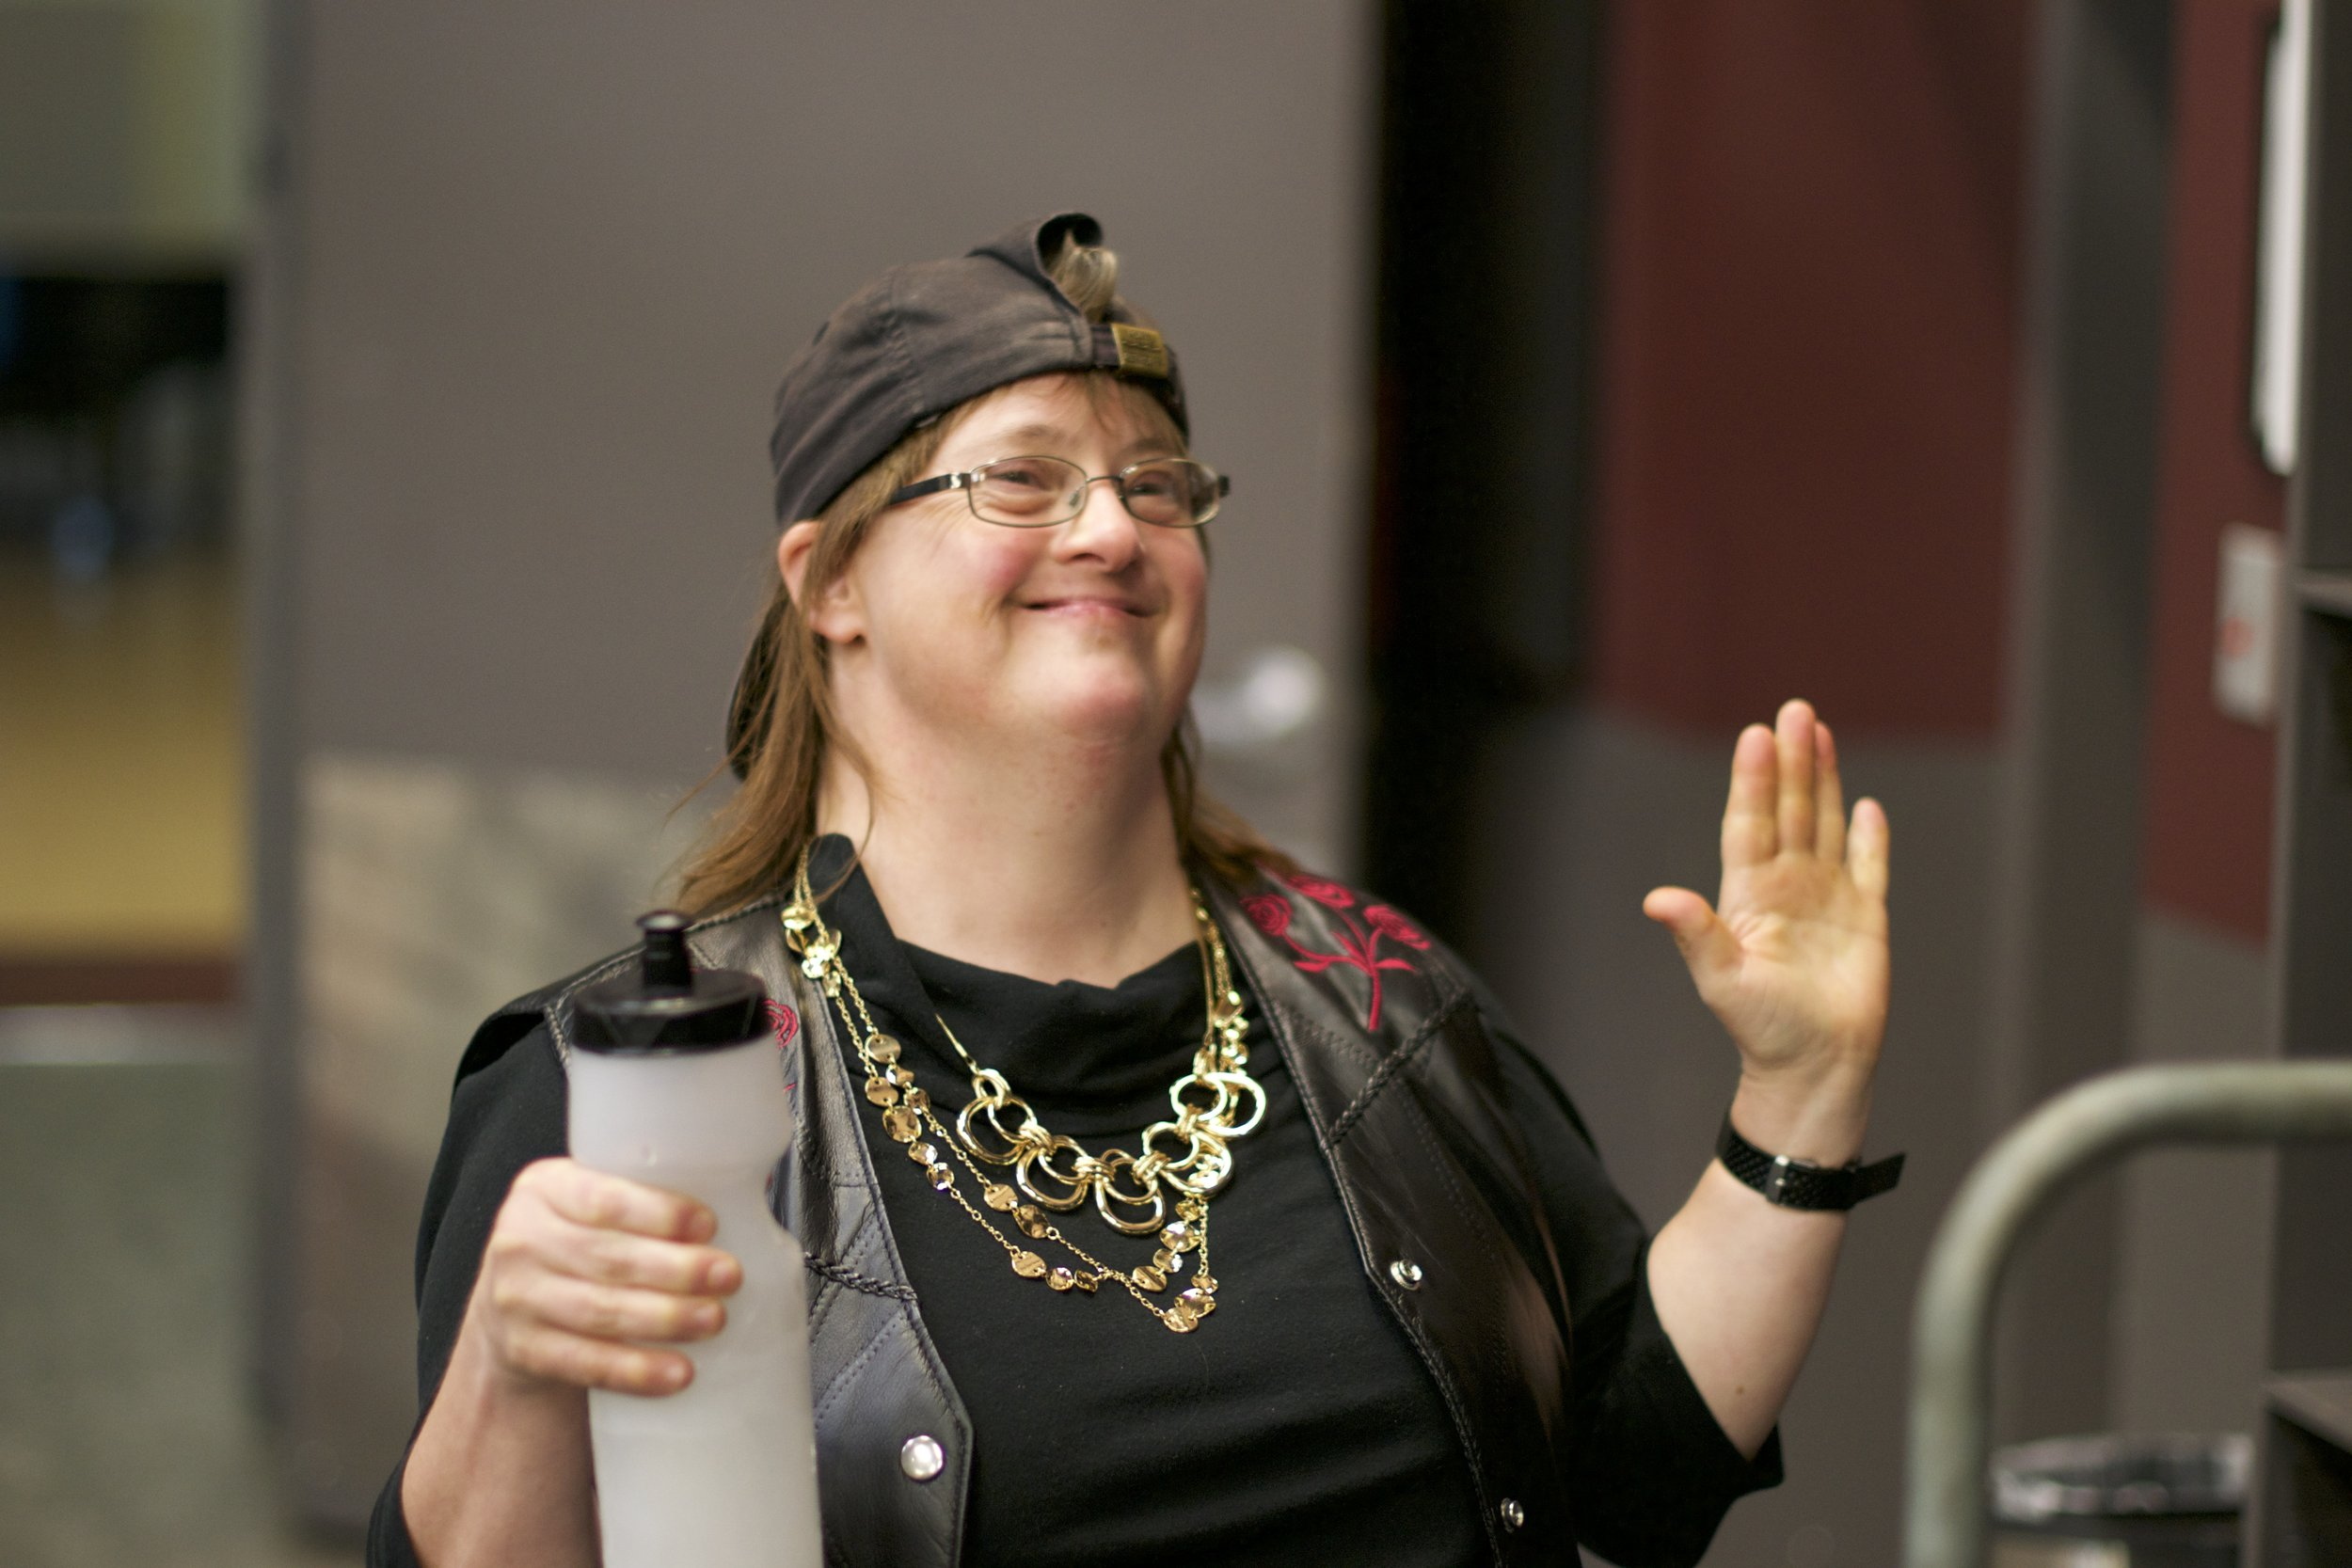 Smiling woman wearing backwards cap and gold necklace, holds a coffee cup and raises the other hand